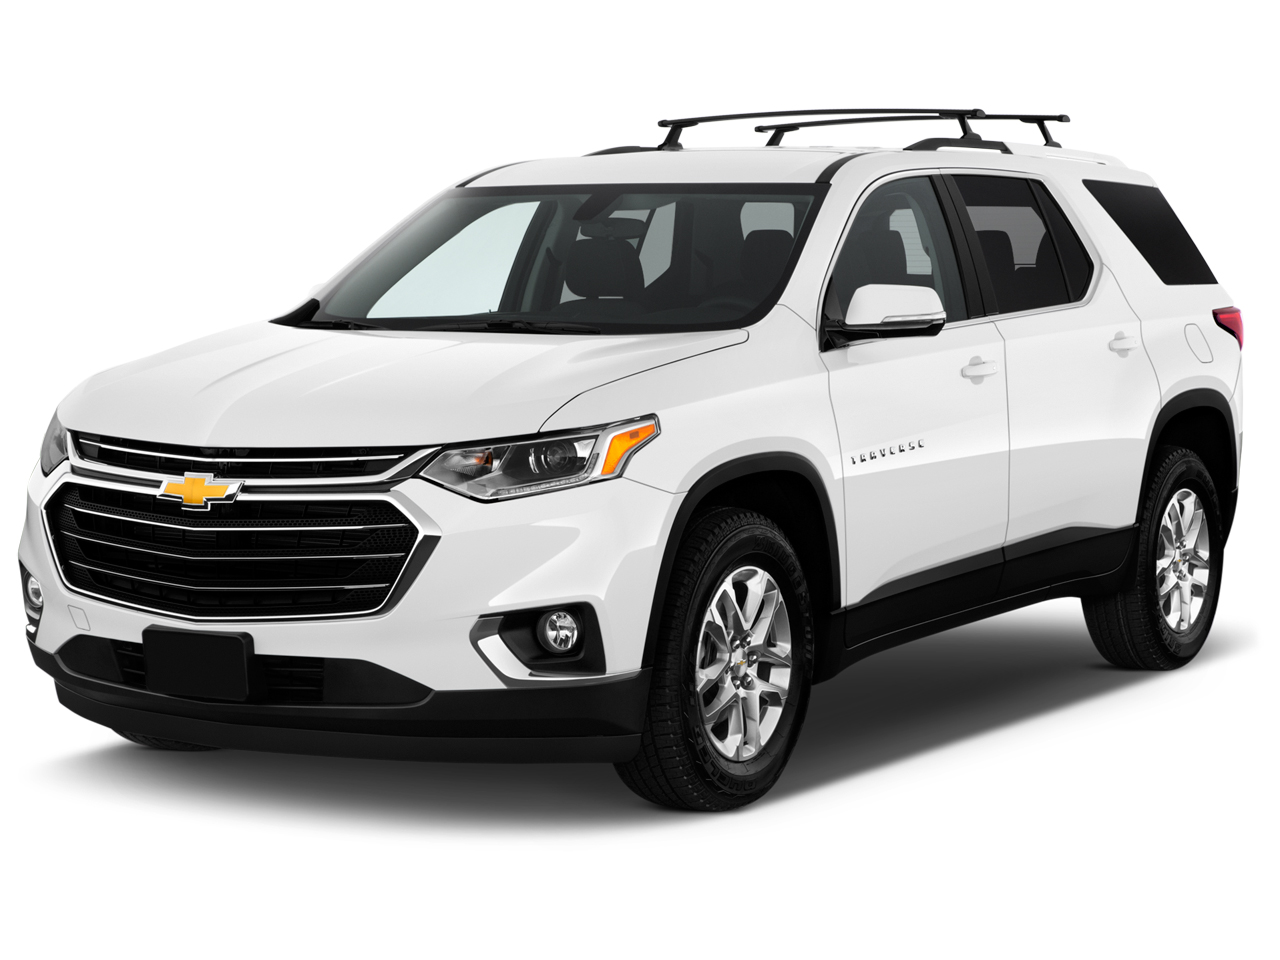 Chevrolet Traverse Accessories Autoeq Ca Canadian Auto